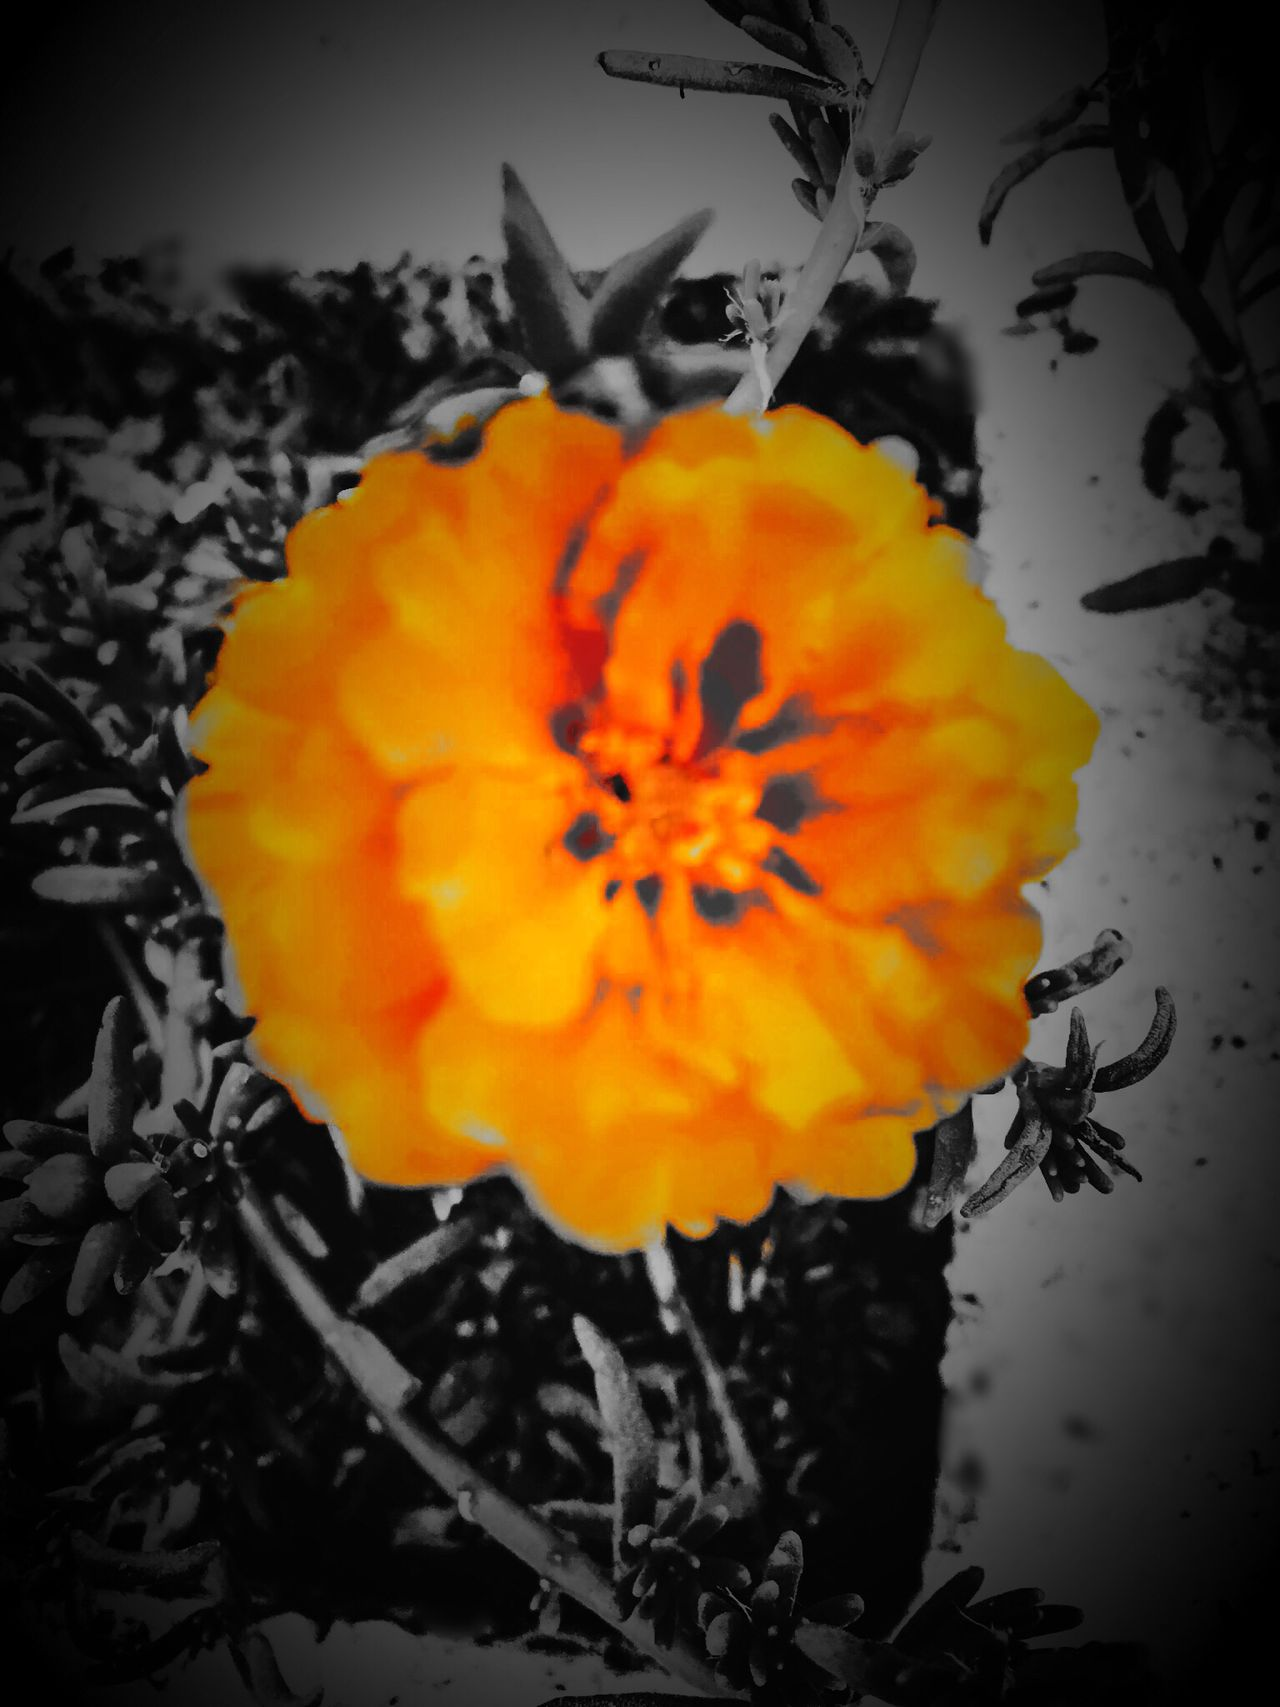 Lovely Flower  Orange Flower Color Splash And HDCamera Apps Orange Flower With Gray Background Poignant Experimenting with color splash app-- this orange flower against gray background appears poignant